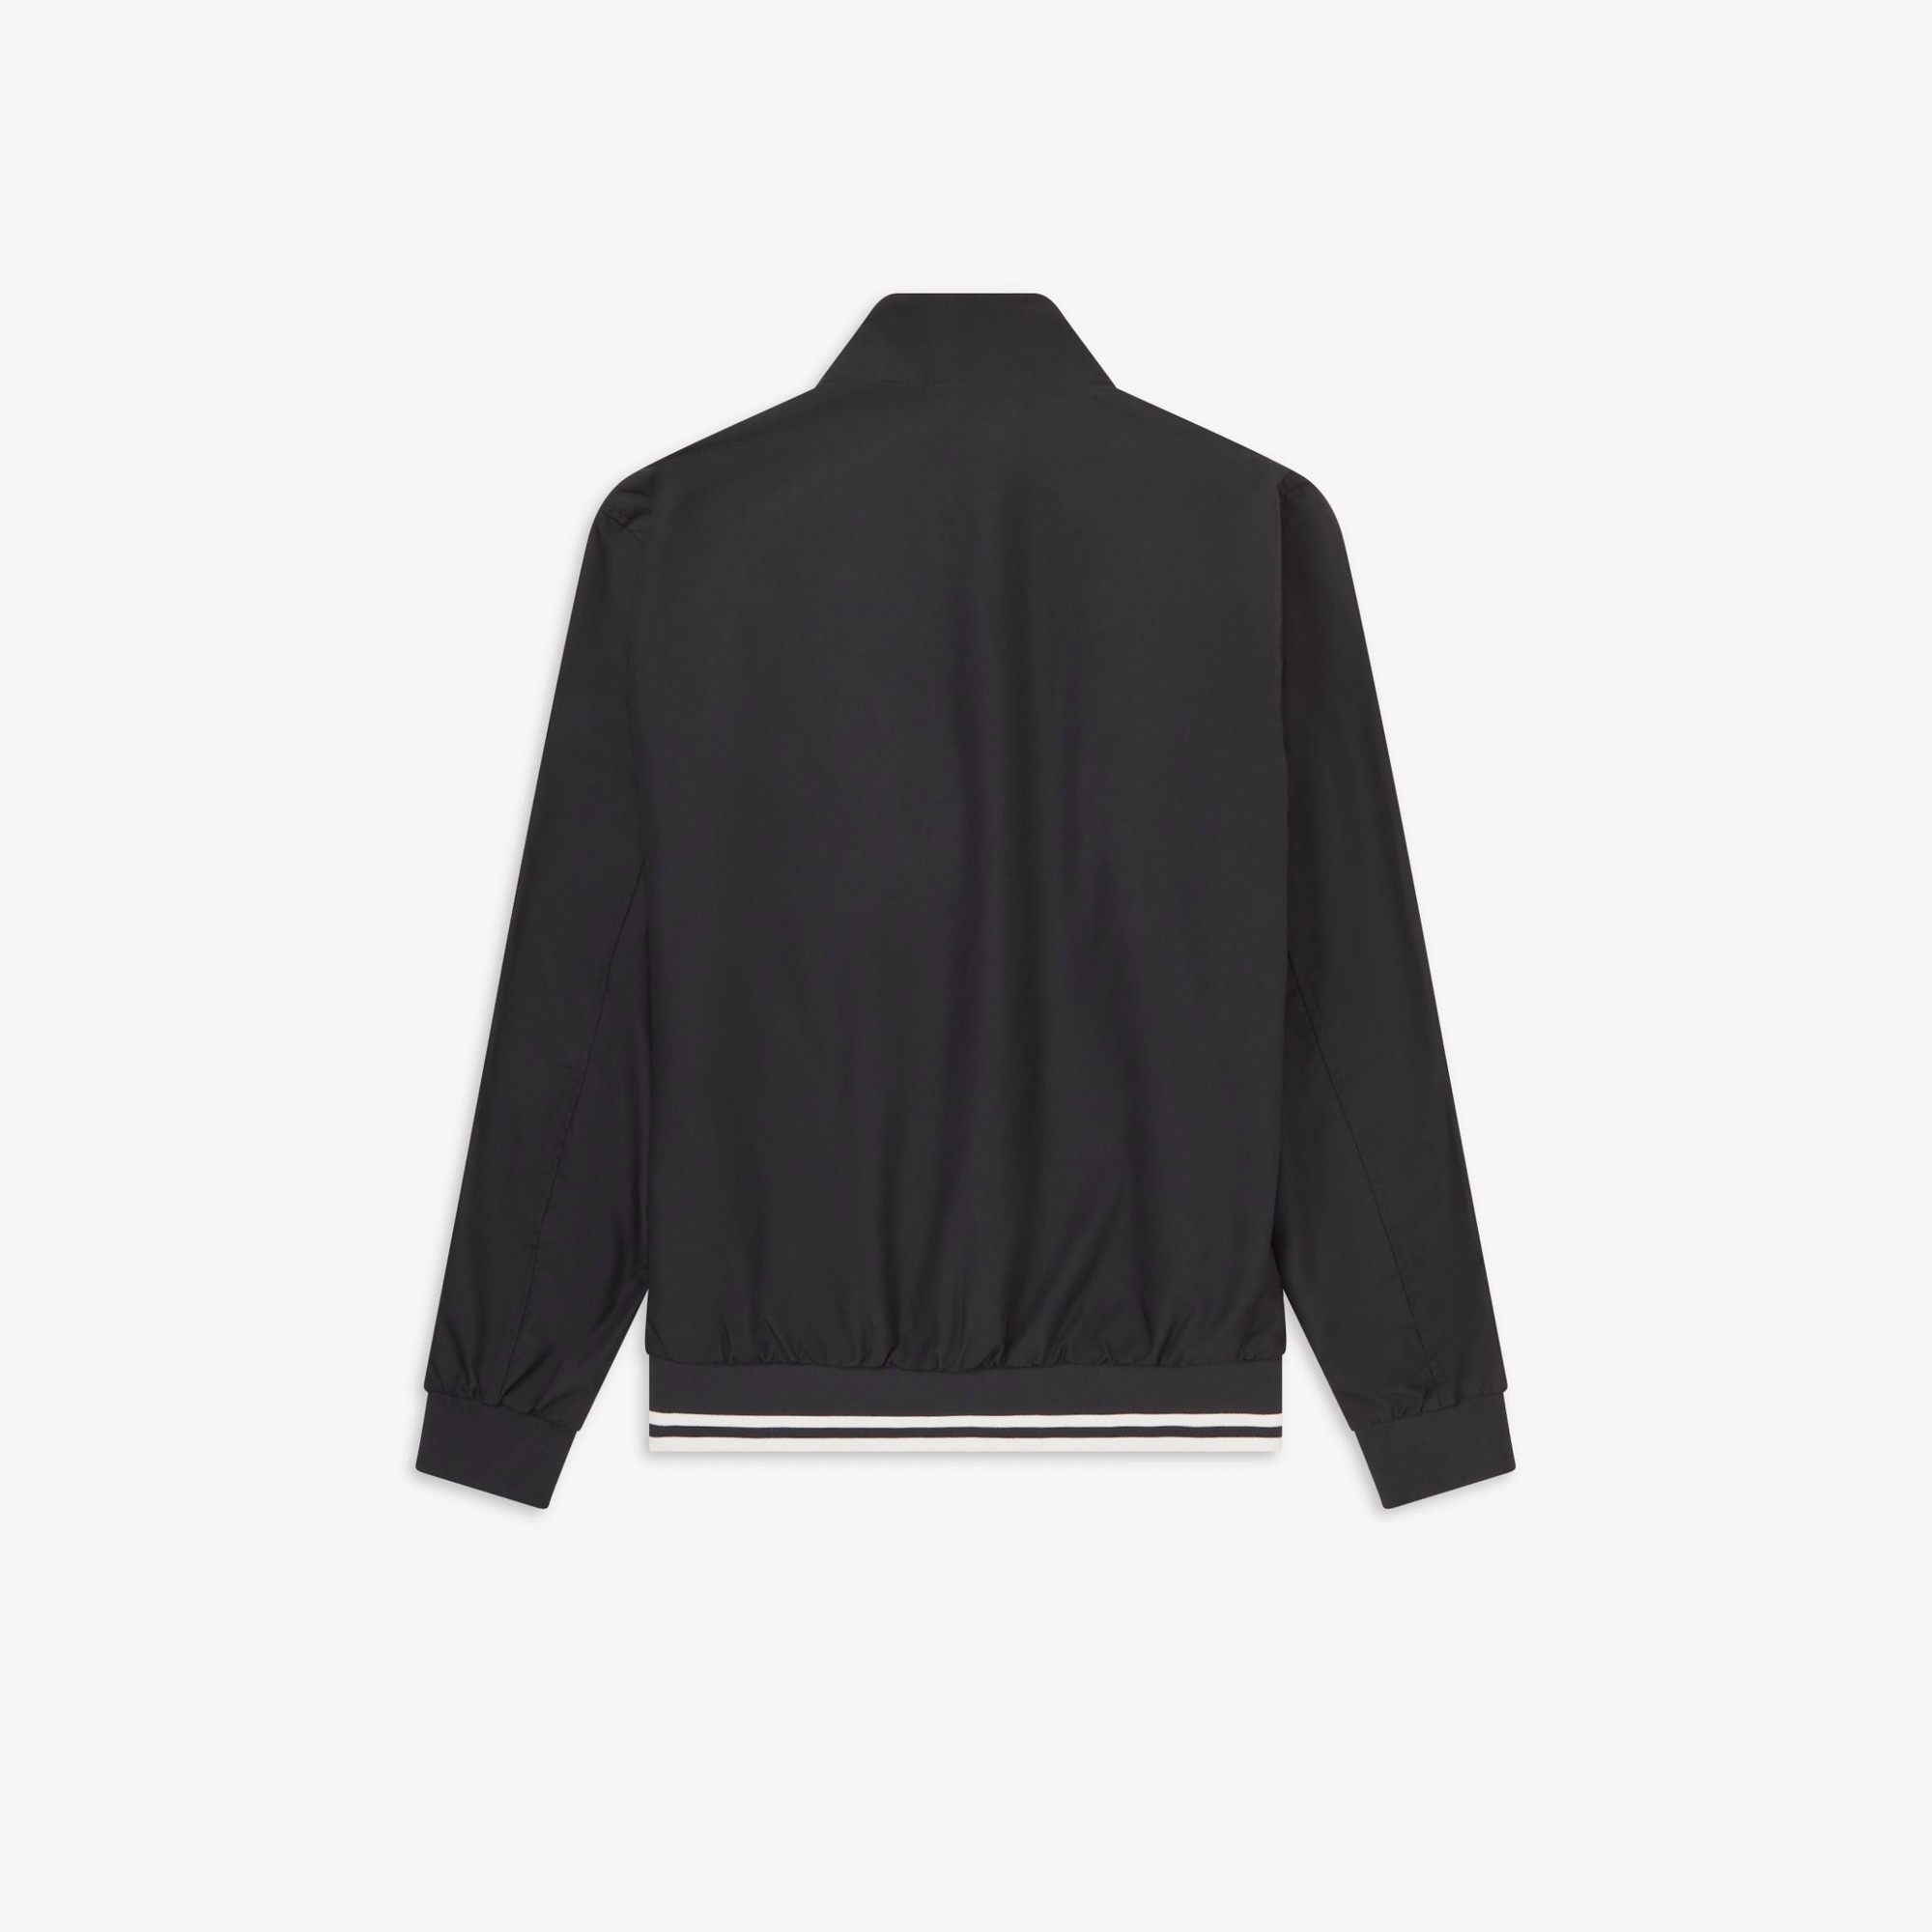 Fred Perry Brentham Jacket 'Black'